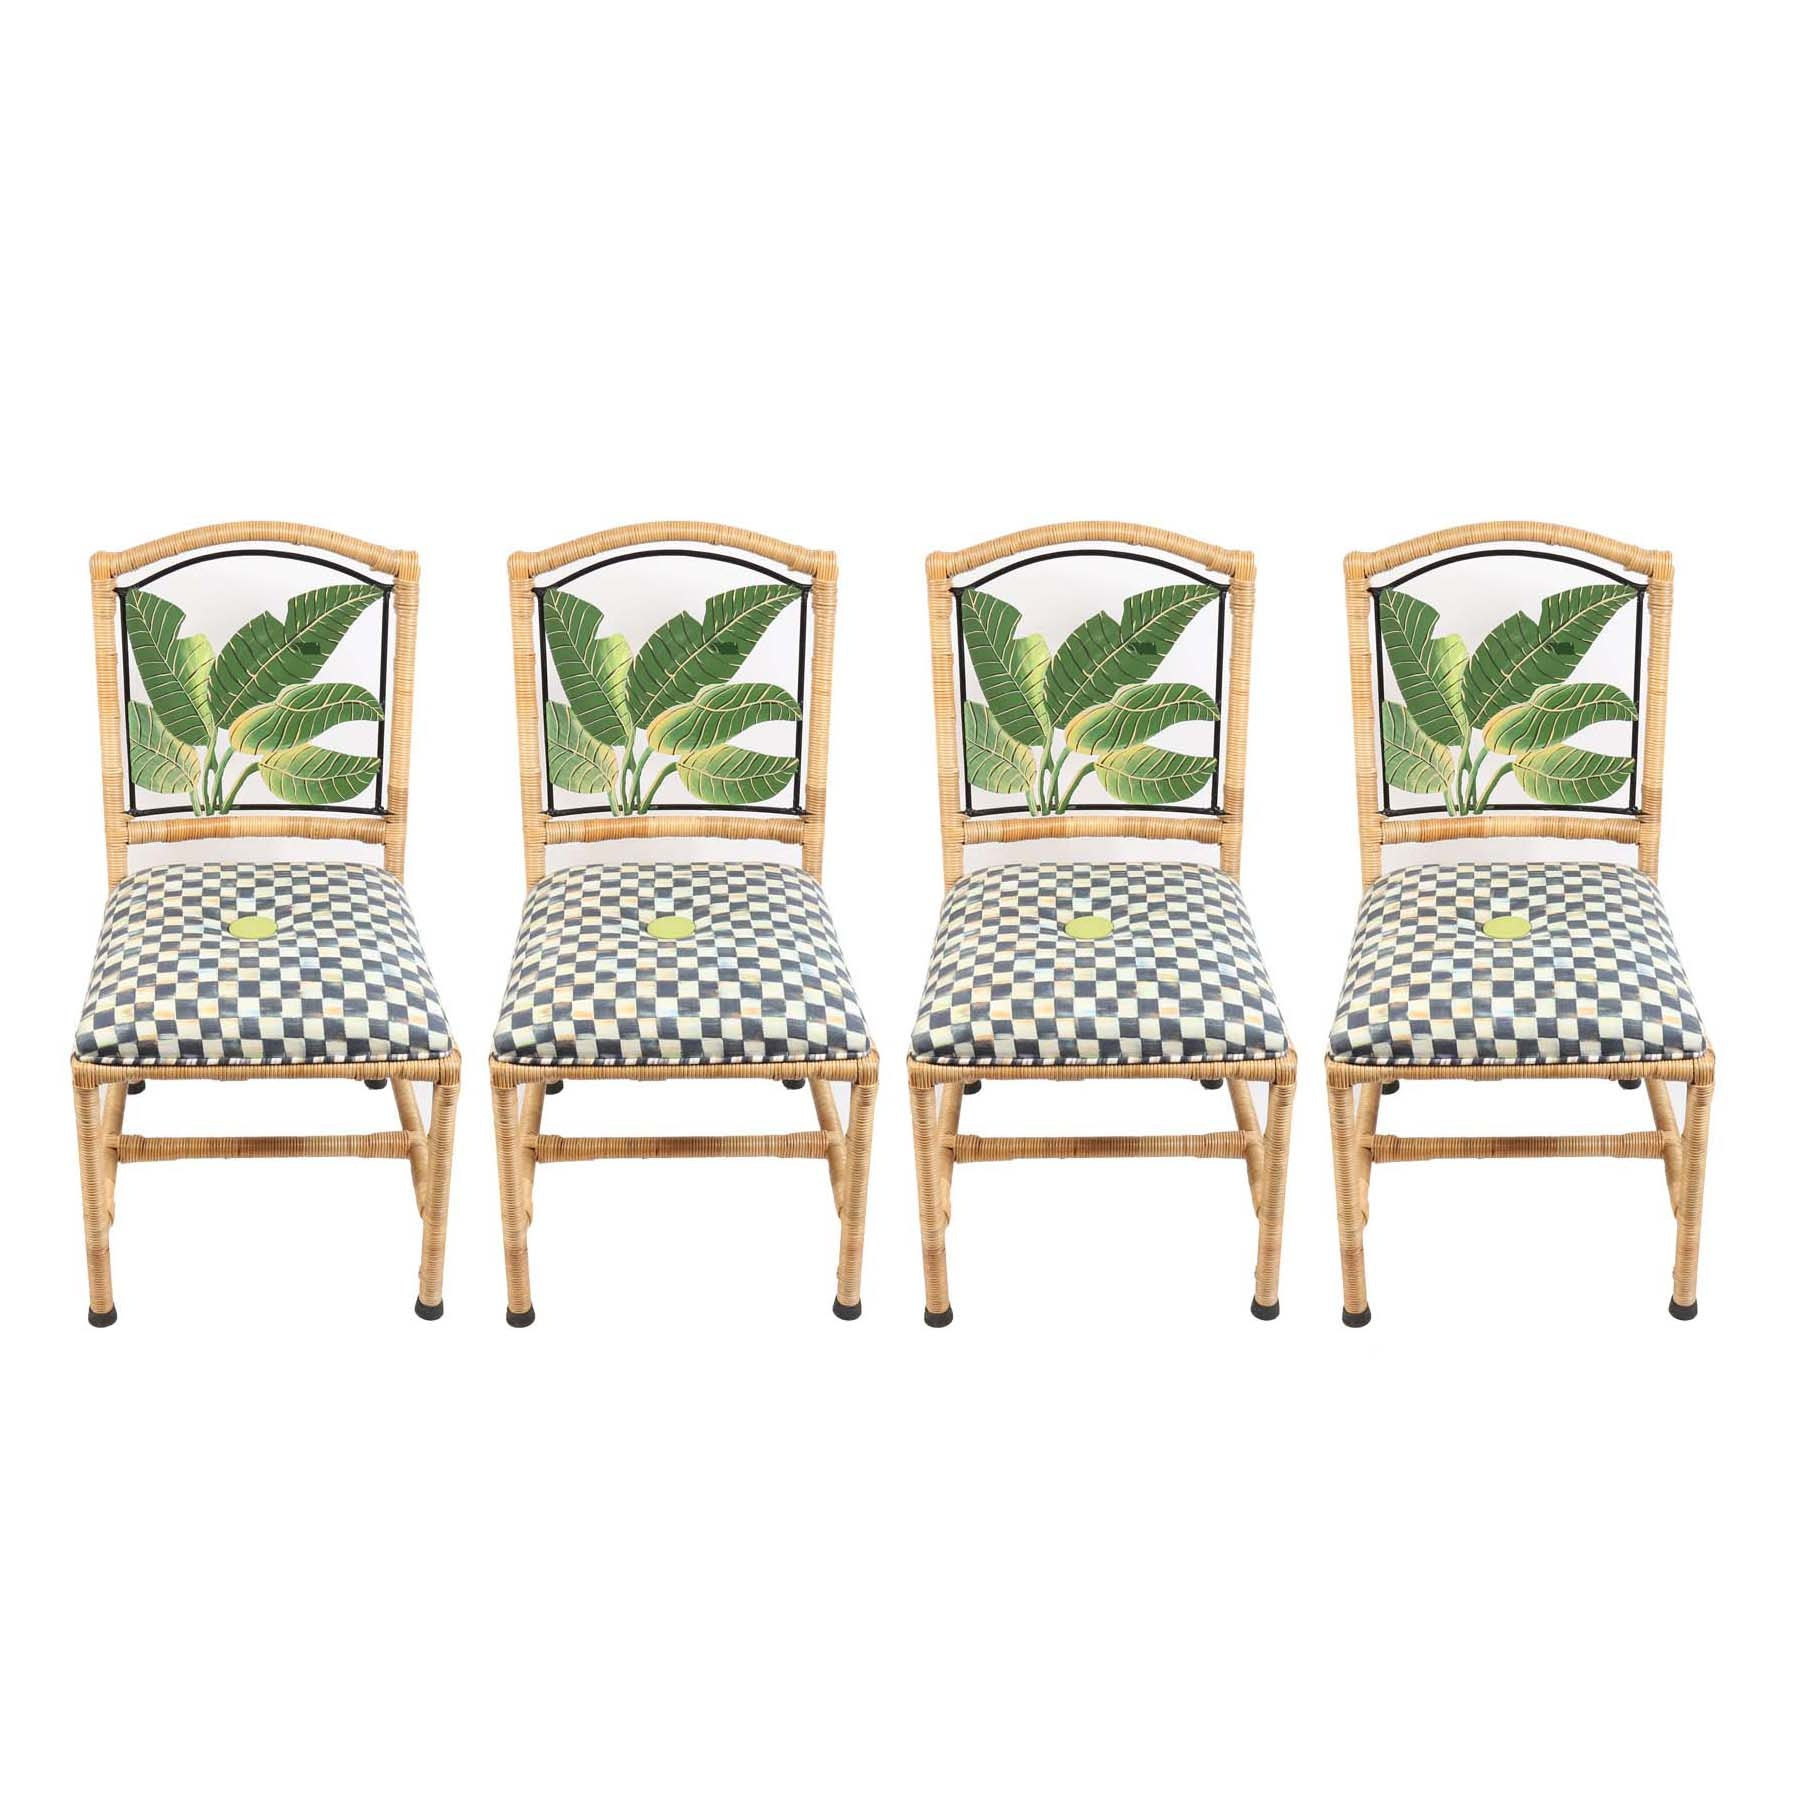 MacKenzie-Childs Upholstered Dining Chairs ...  sc 1 st  EBTH.com & MacKenzie-Childs Upholstered Dining Chairs : EBTH